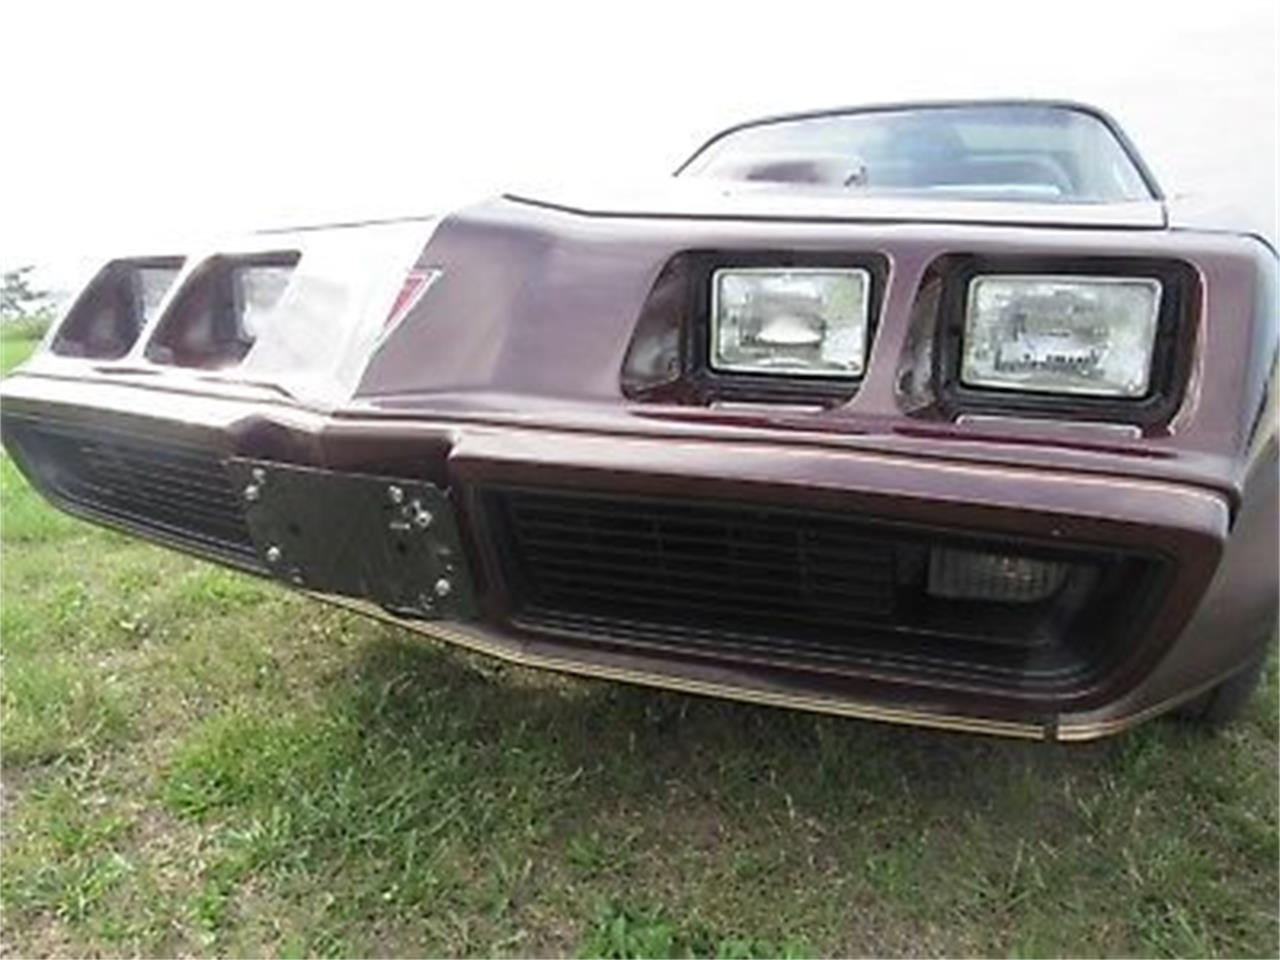 Large Picture of '80 Pontiac Firebird Trans Am - $24,000.00 Offered by a Private Seller - OCWB